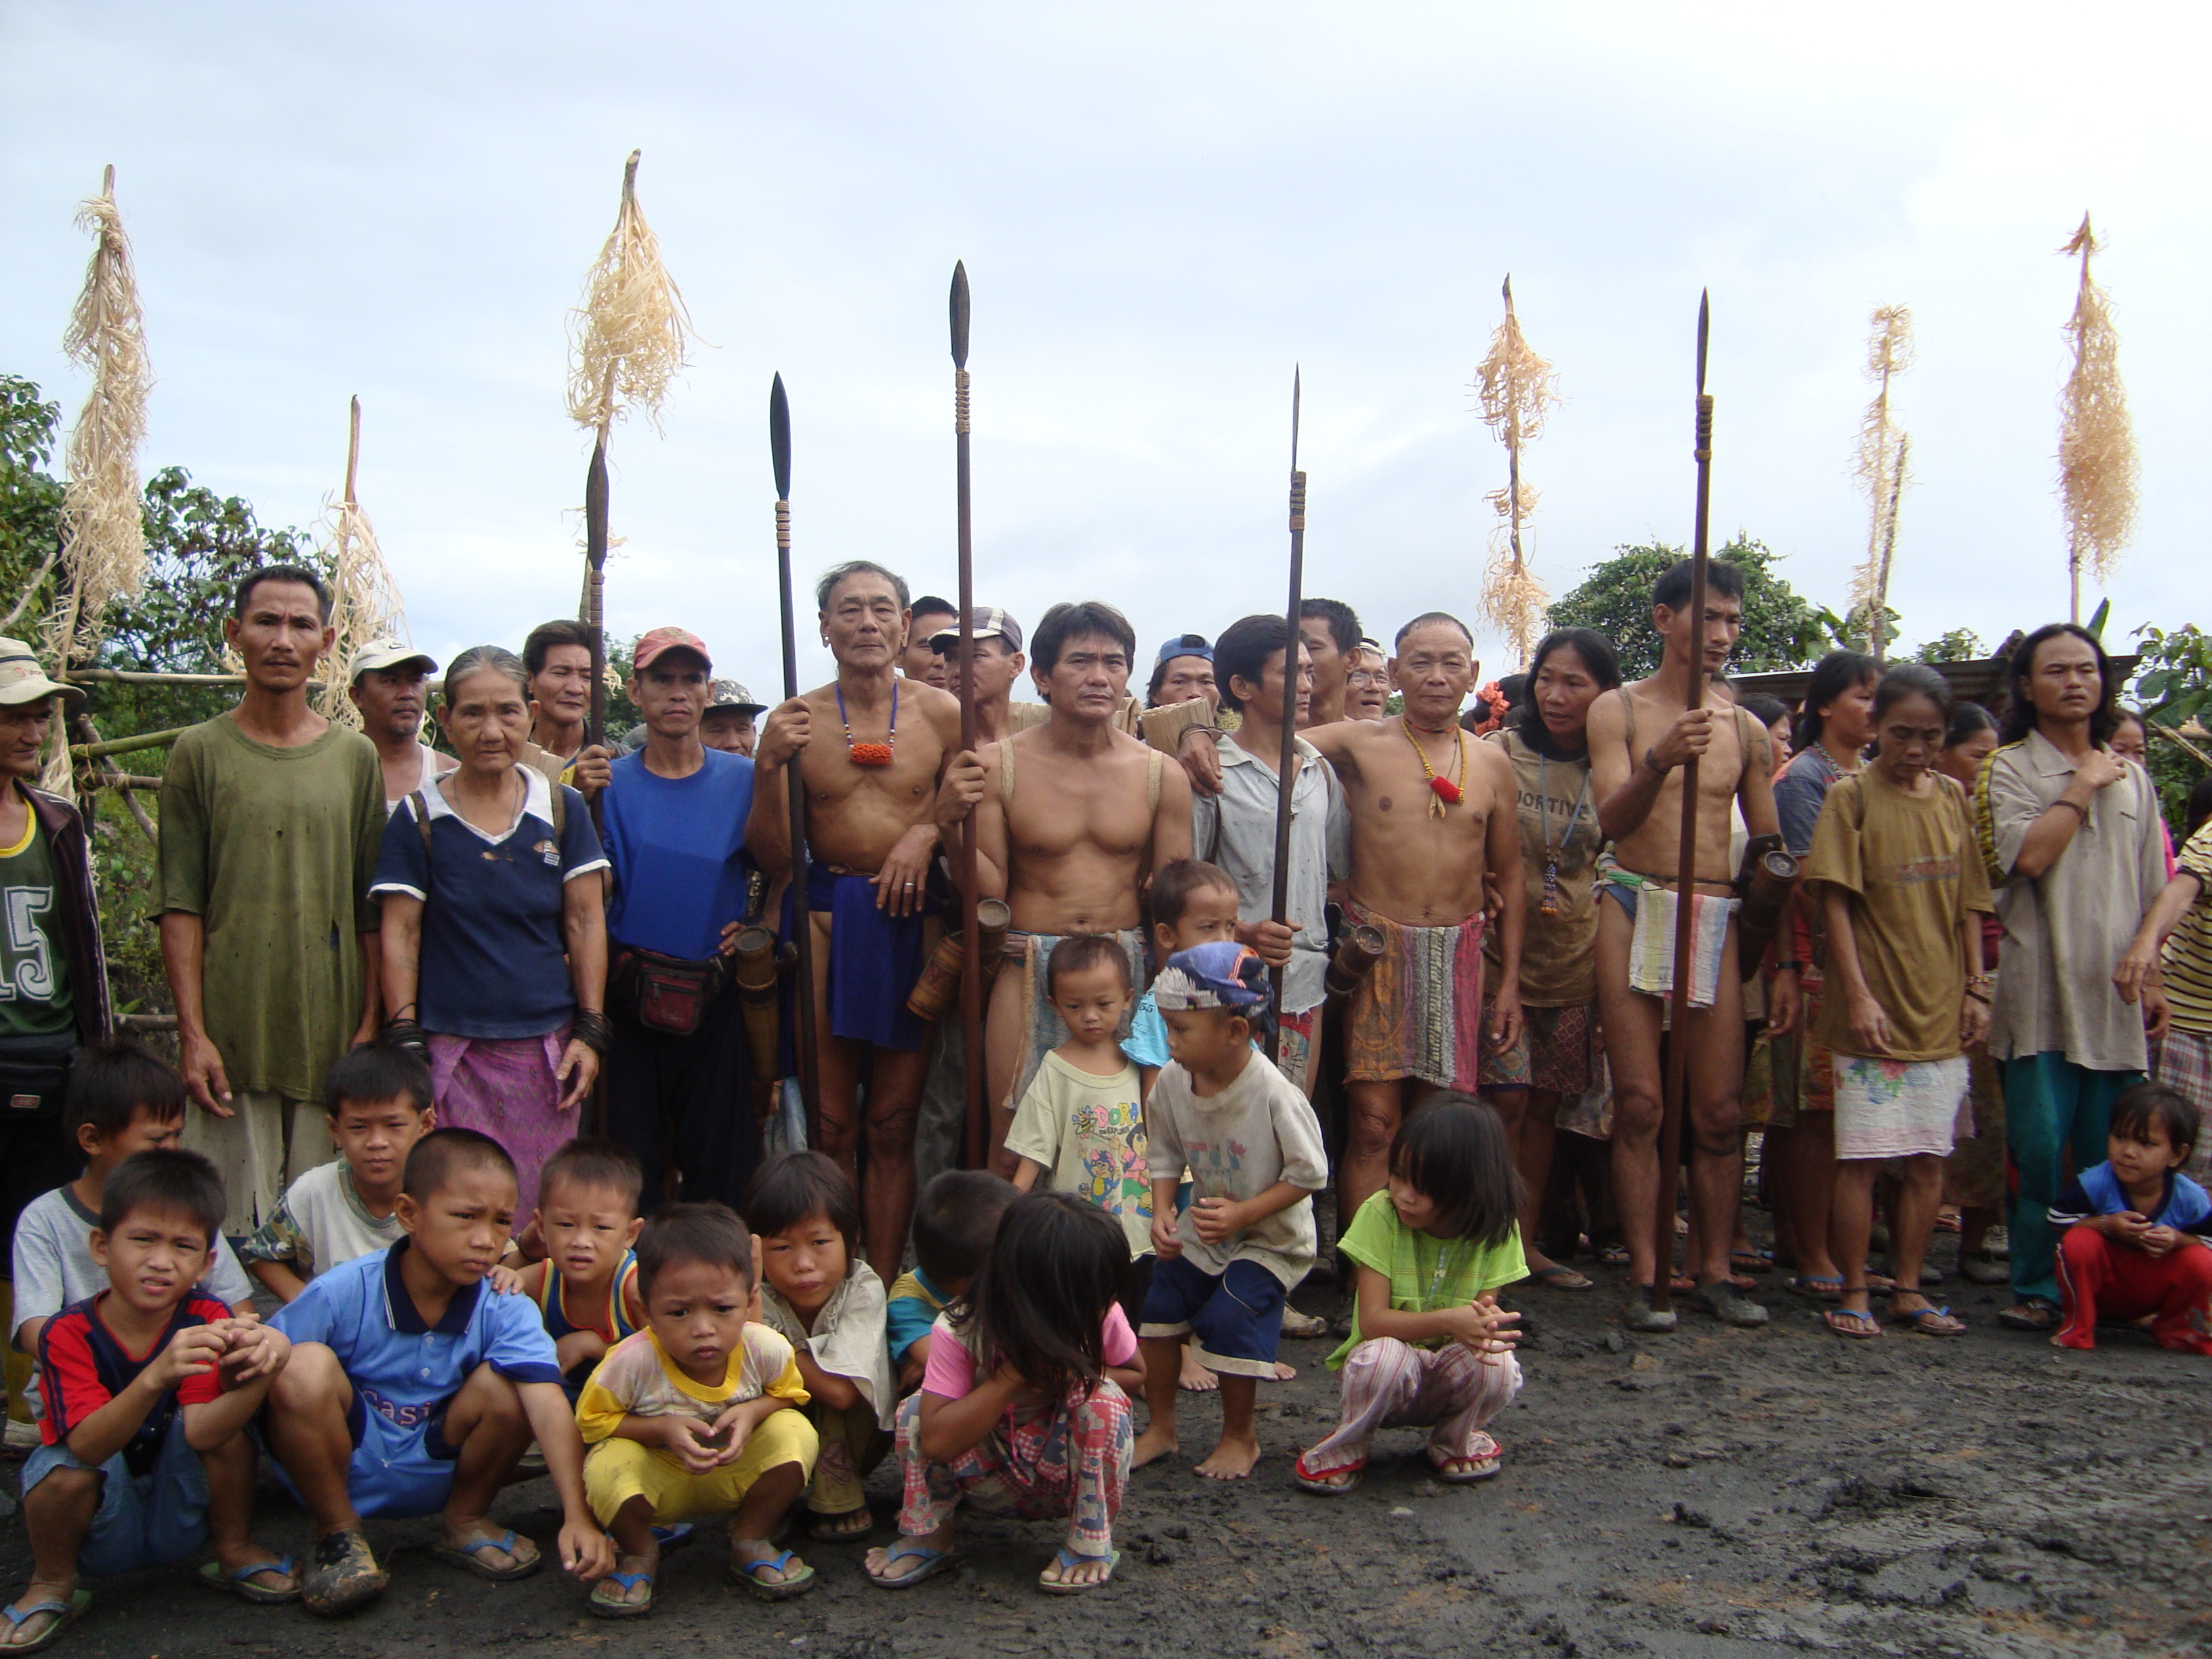 Native forest dwellers in Sarawak protesting at the logging and destruction of their lands and rivers